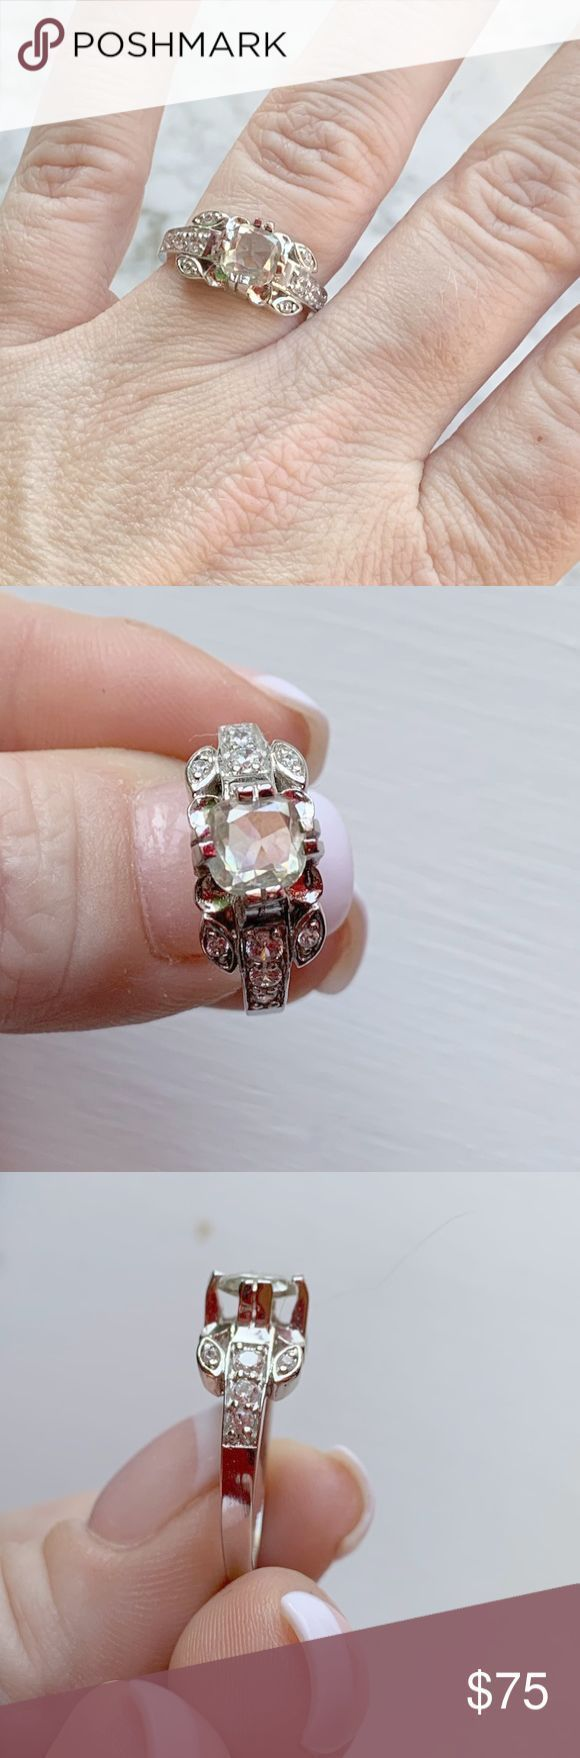 Jewelry Stores Near Me Engagement Rings his Online Jewellery Designing Jobs orde…  – Jewelry Designs